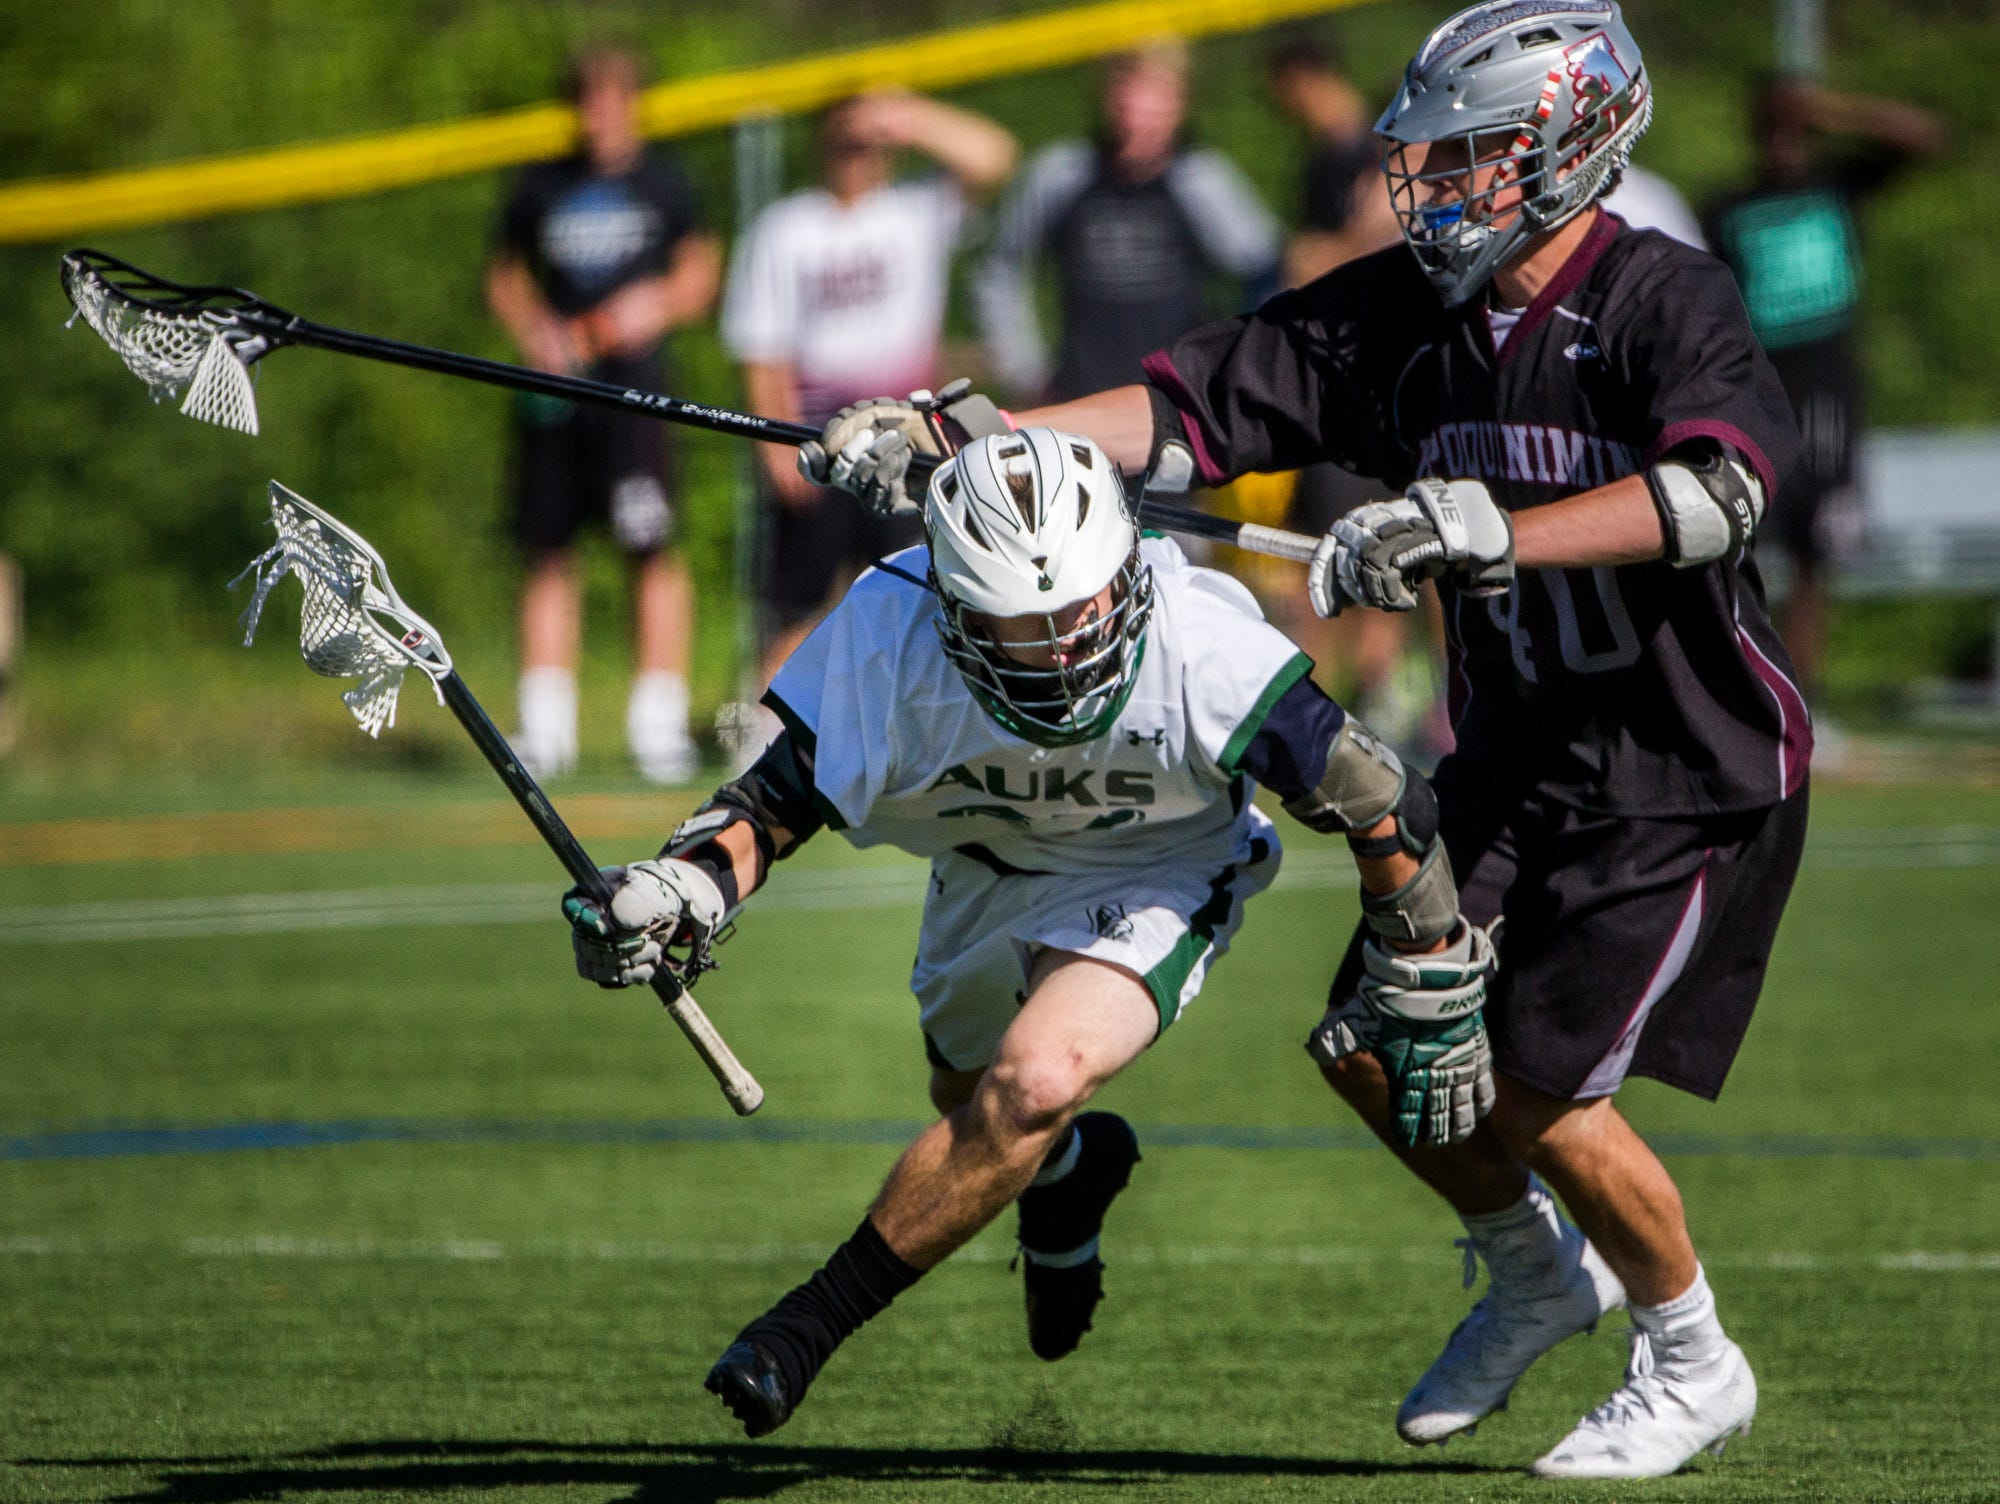 Archmere's Benjamin Revak ducks under the stick of Appoquinimink's Nicholas Bowen in the second quarter of Appoquinimink's 13-12 win over Archmere at Archmere Academy on Wednesday afternoon.